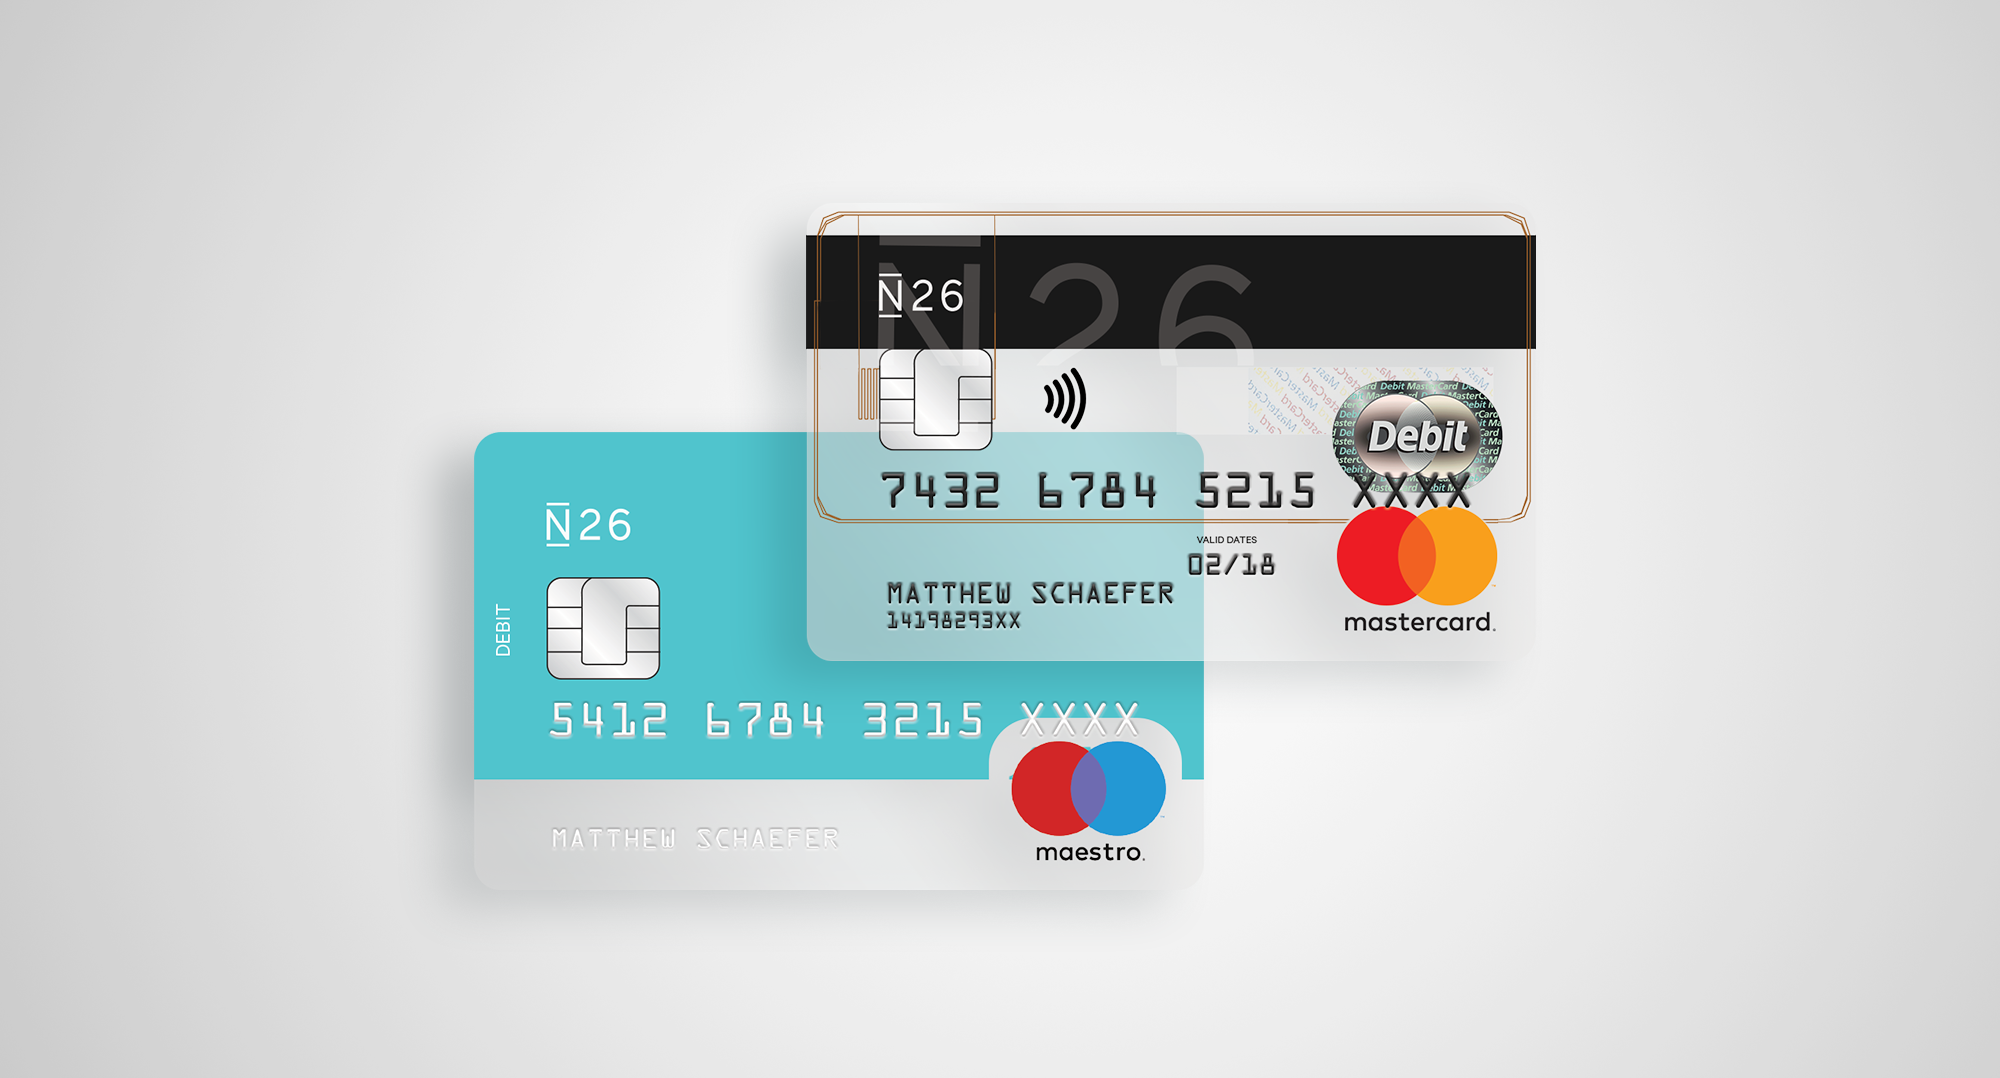 Where to quickly issue a credit card without reference 88